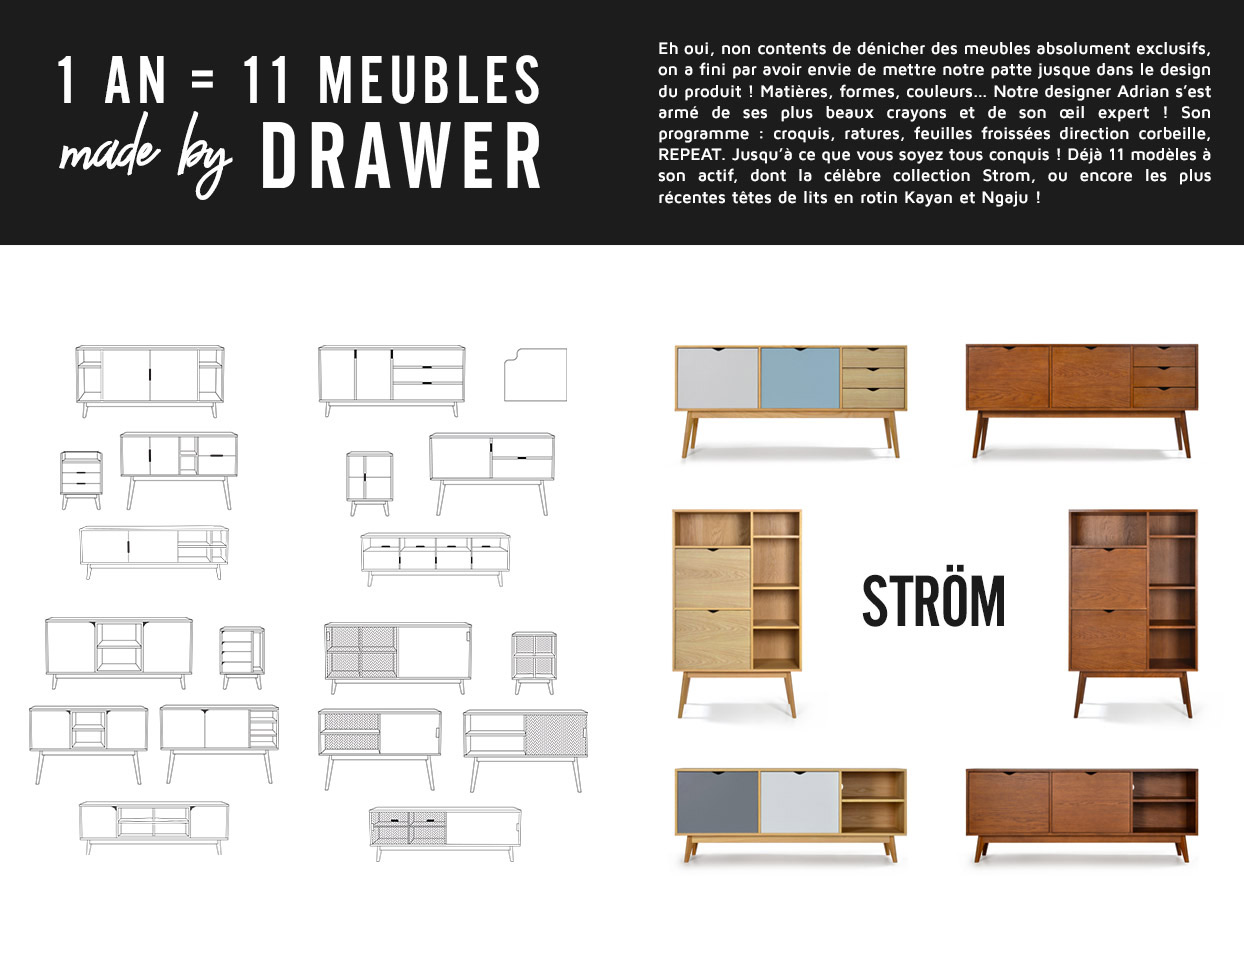 Collection Ström by Drawer